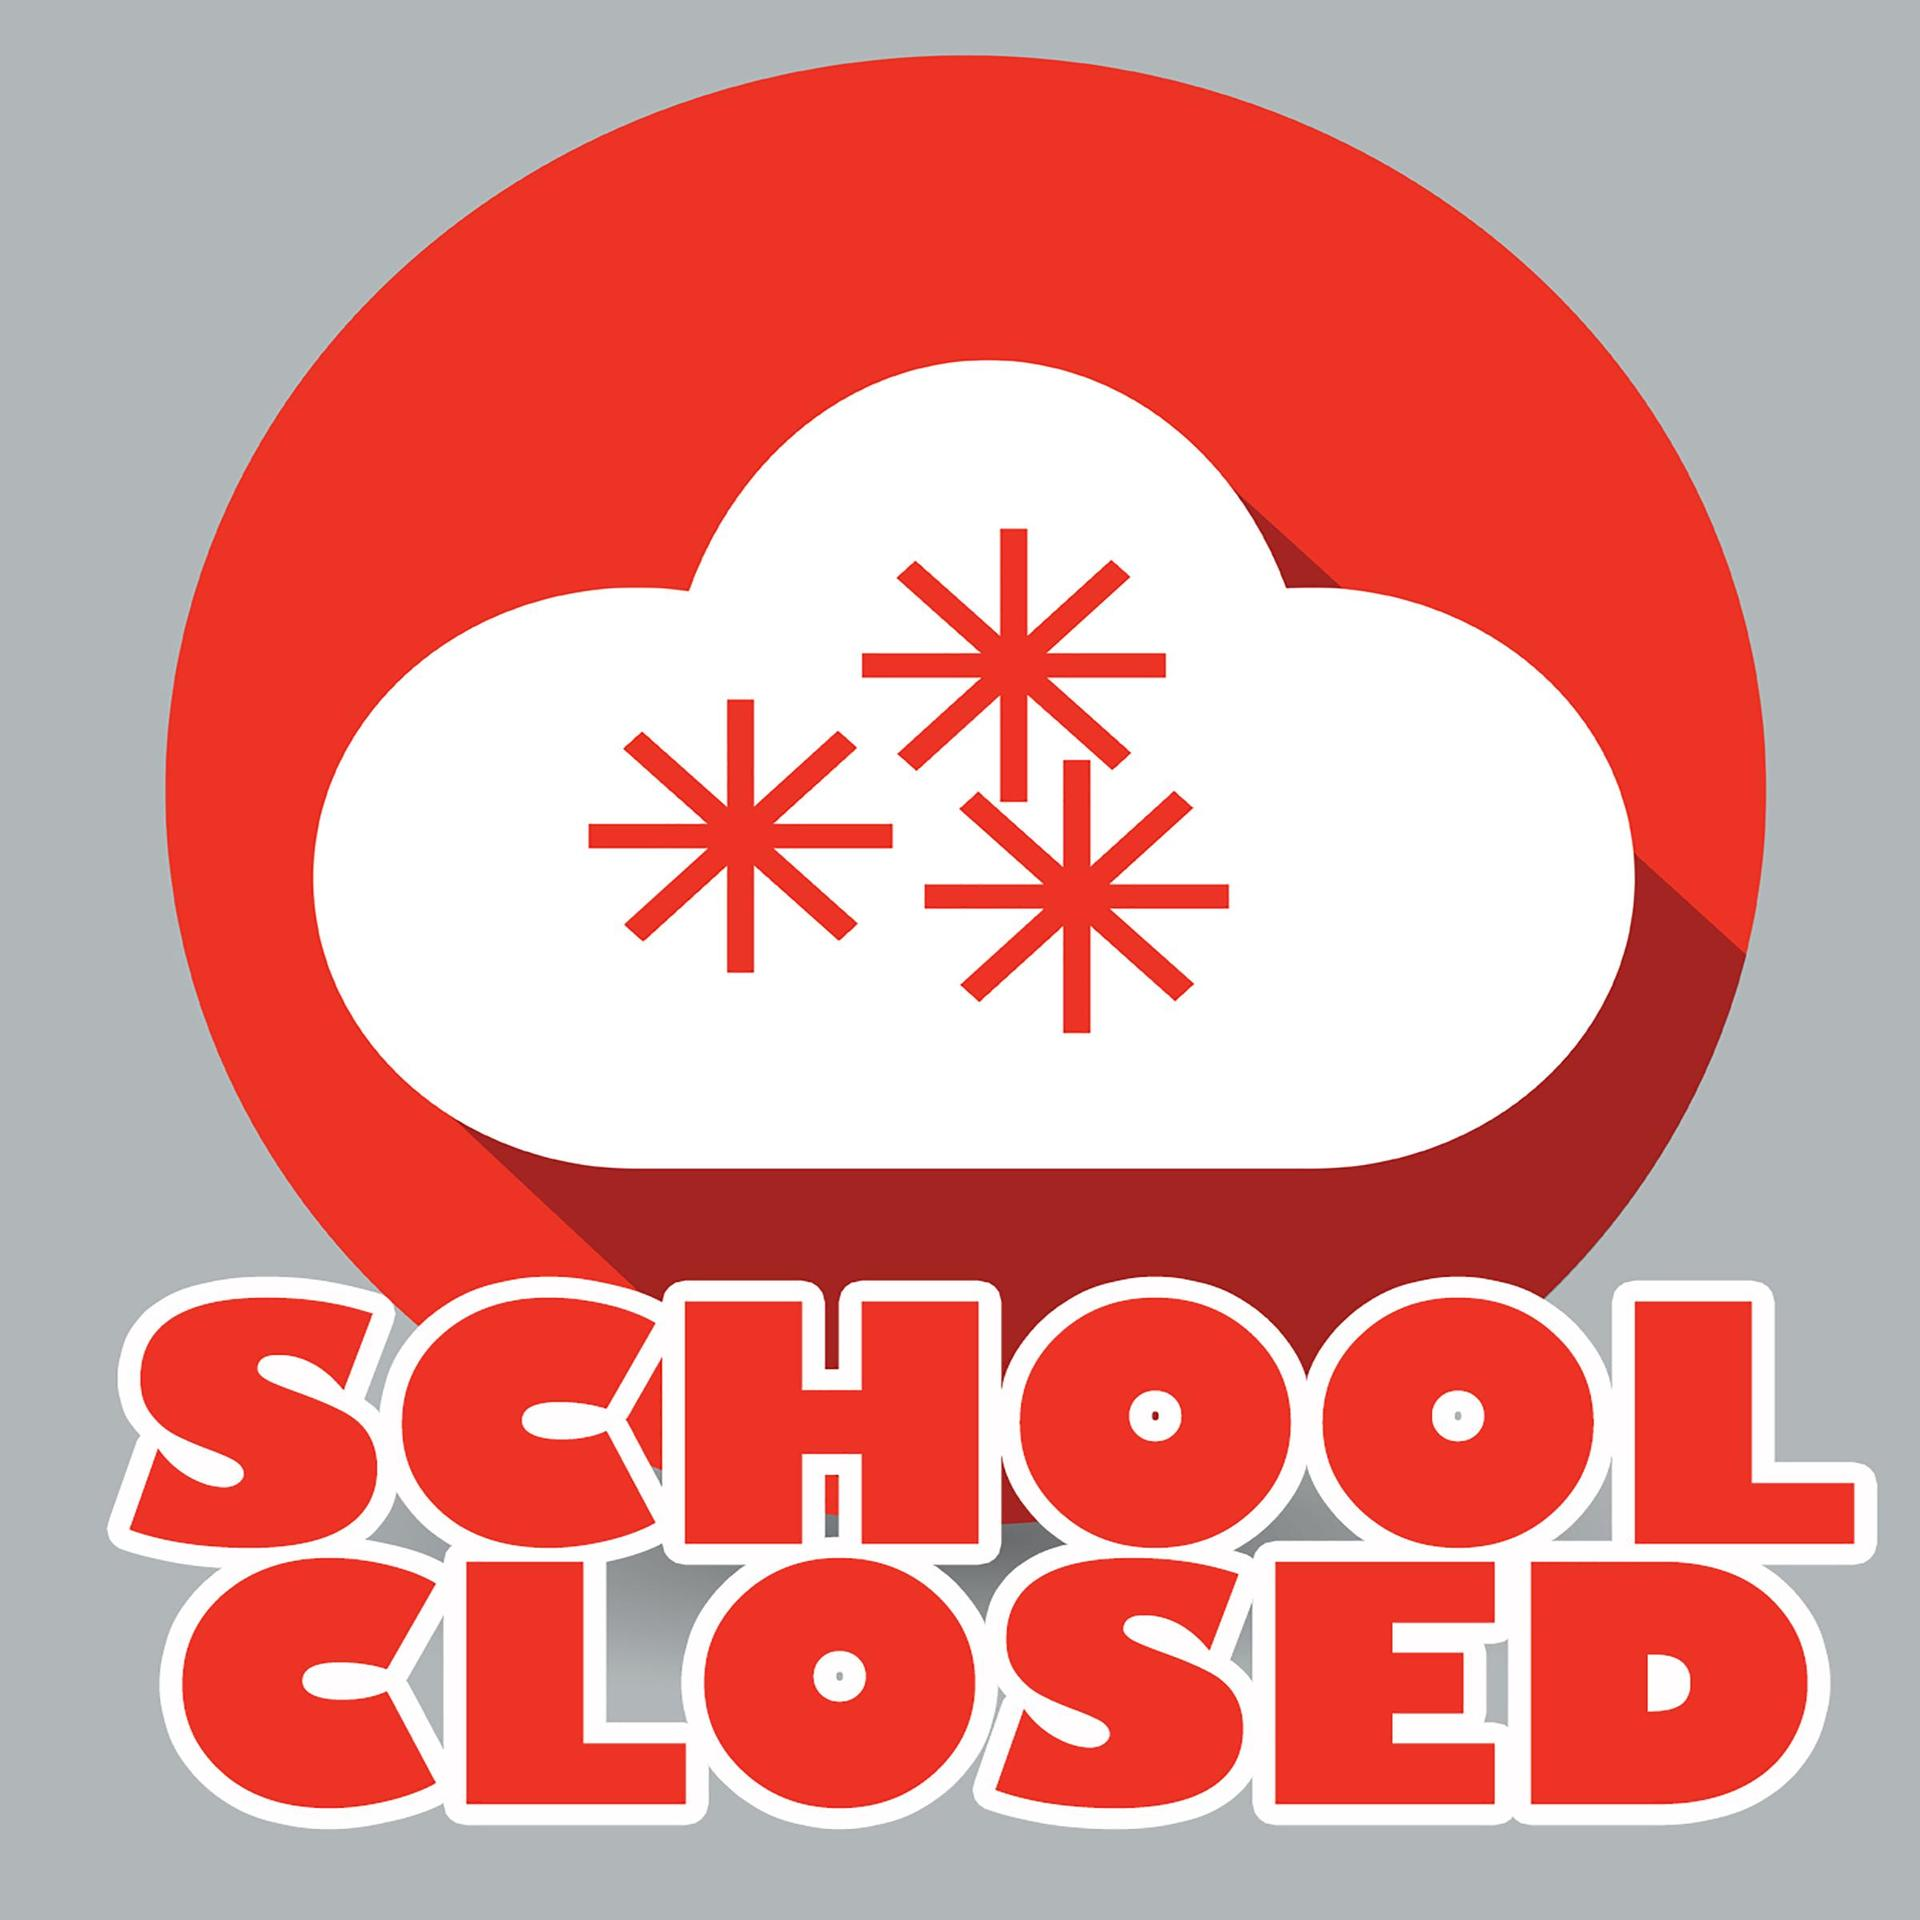 school closed logo